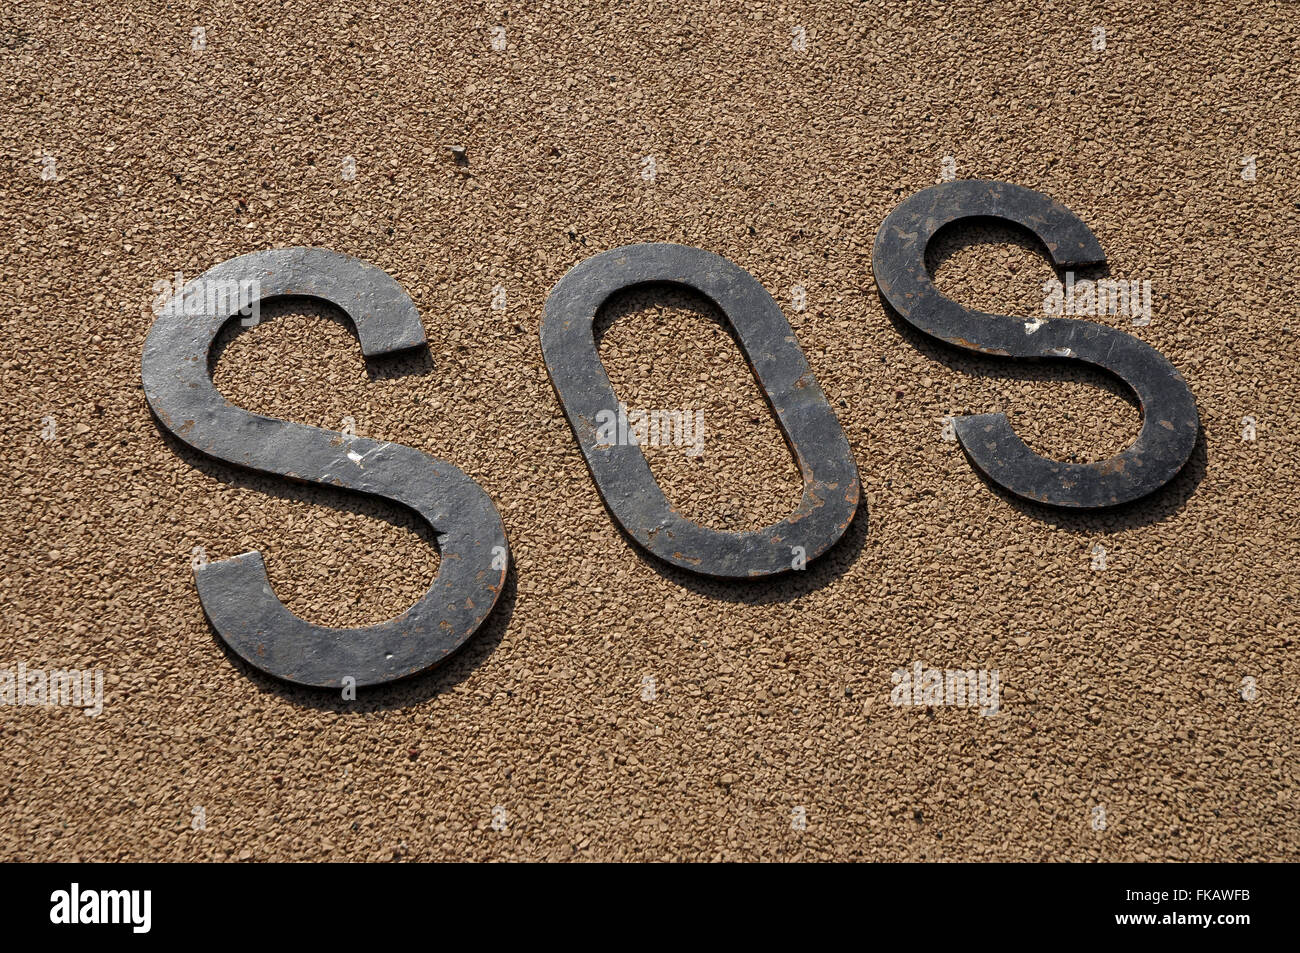 METAL. iron. letters, SOS, help, help, iron, icon help, salvation, symbol, global symbol, emergency, rescue, assistance, - Stock Image